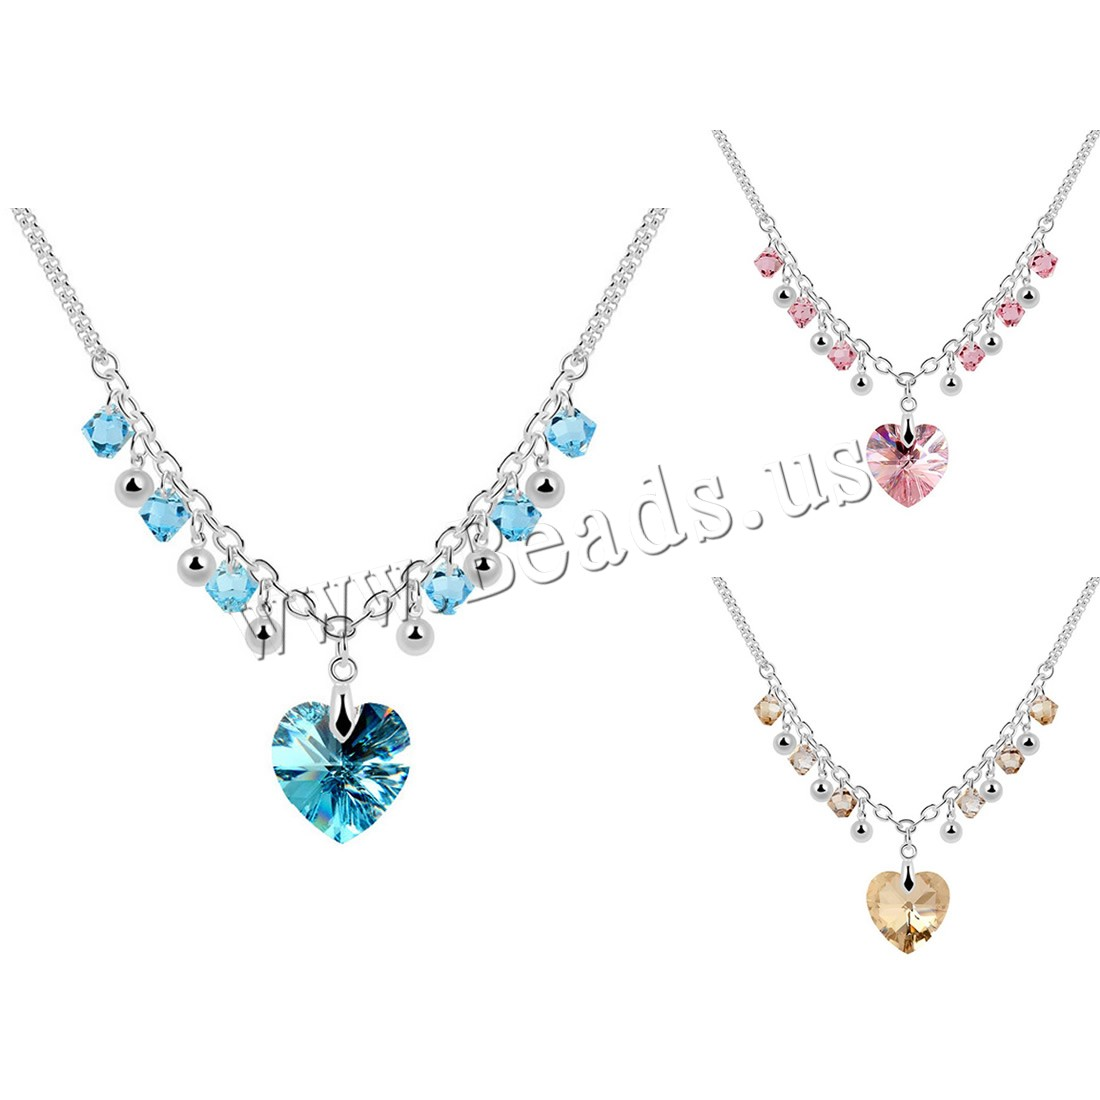 Buy CRYSTALLIZED™ Element Crystal Necklace Brass CRYSTALLIZED™ 5cm extender chain Heart platinum plated box chain & woman & faceted colors choice nickel lead & cadmium free 17x23mm Sold Per Approx 15.5 Inch Strand